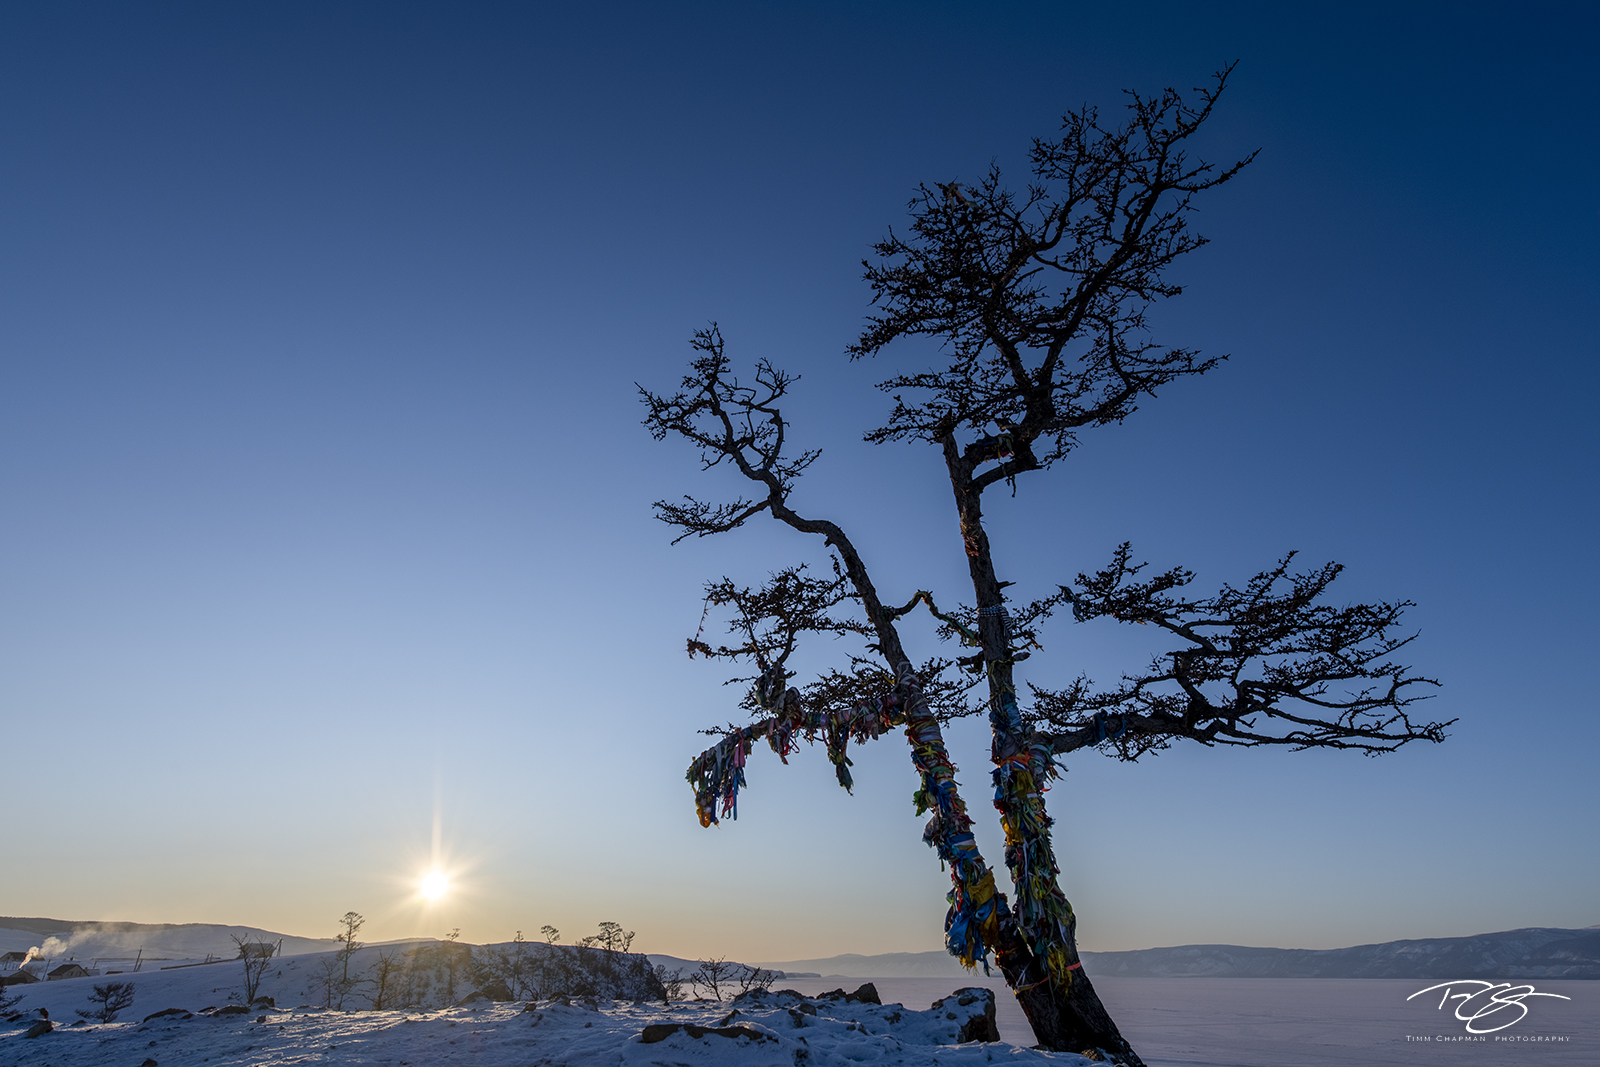 russia, lake baikal, siberia, ice, winter, Pribaikalsky National Park, Прибайкальский национальный парк, Pribaykalski National Park, shamainst, shaman, tree, shaman tree, ribbons, taiga, shamanka, khu, photo